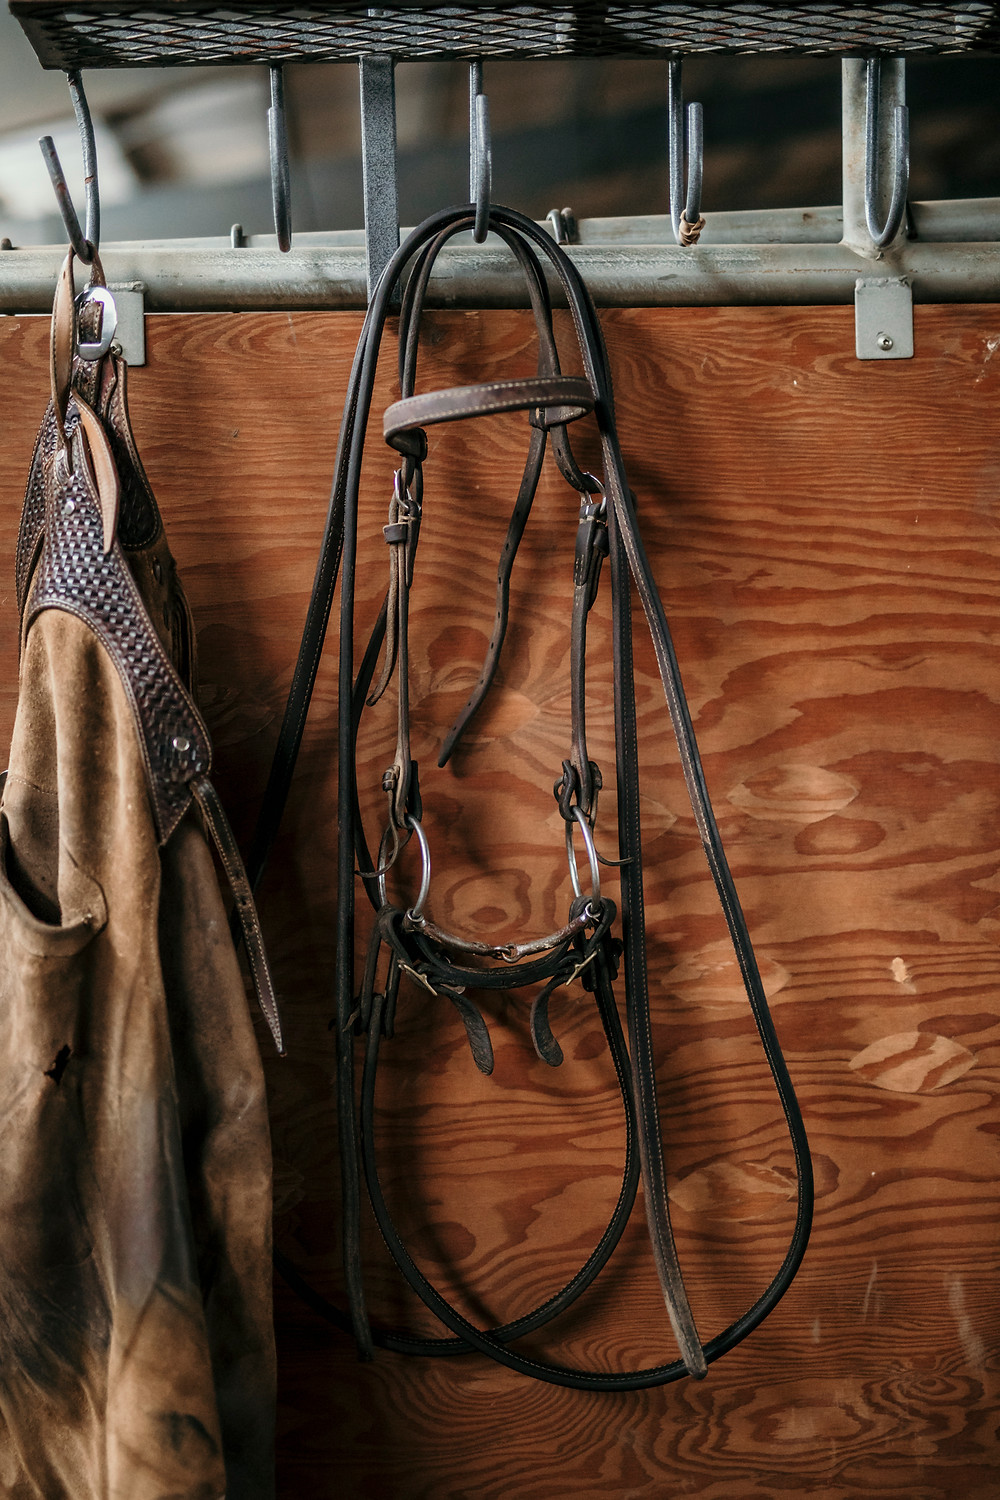 cutting horse snaffle bit, twisted wire snaffle bit